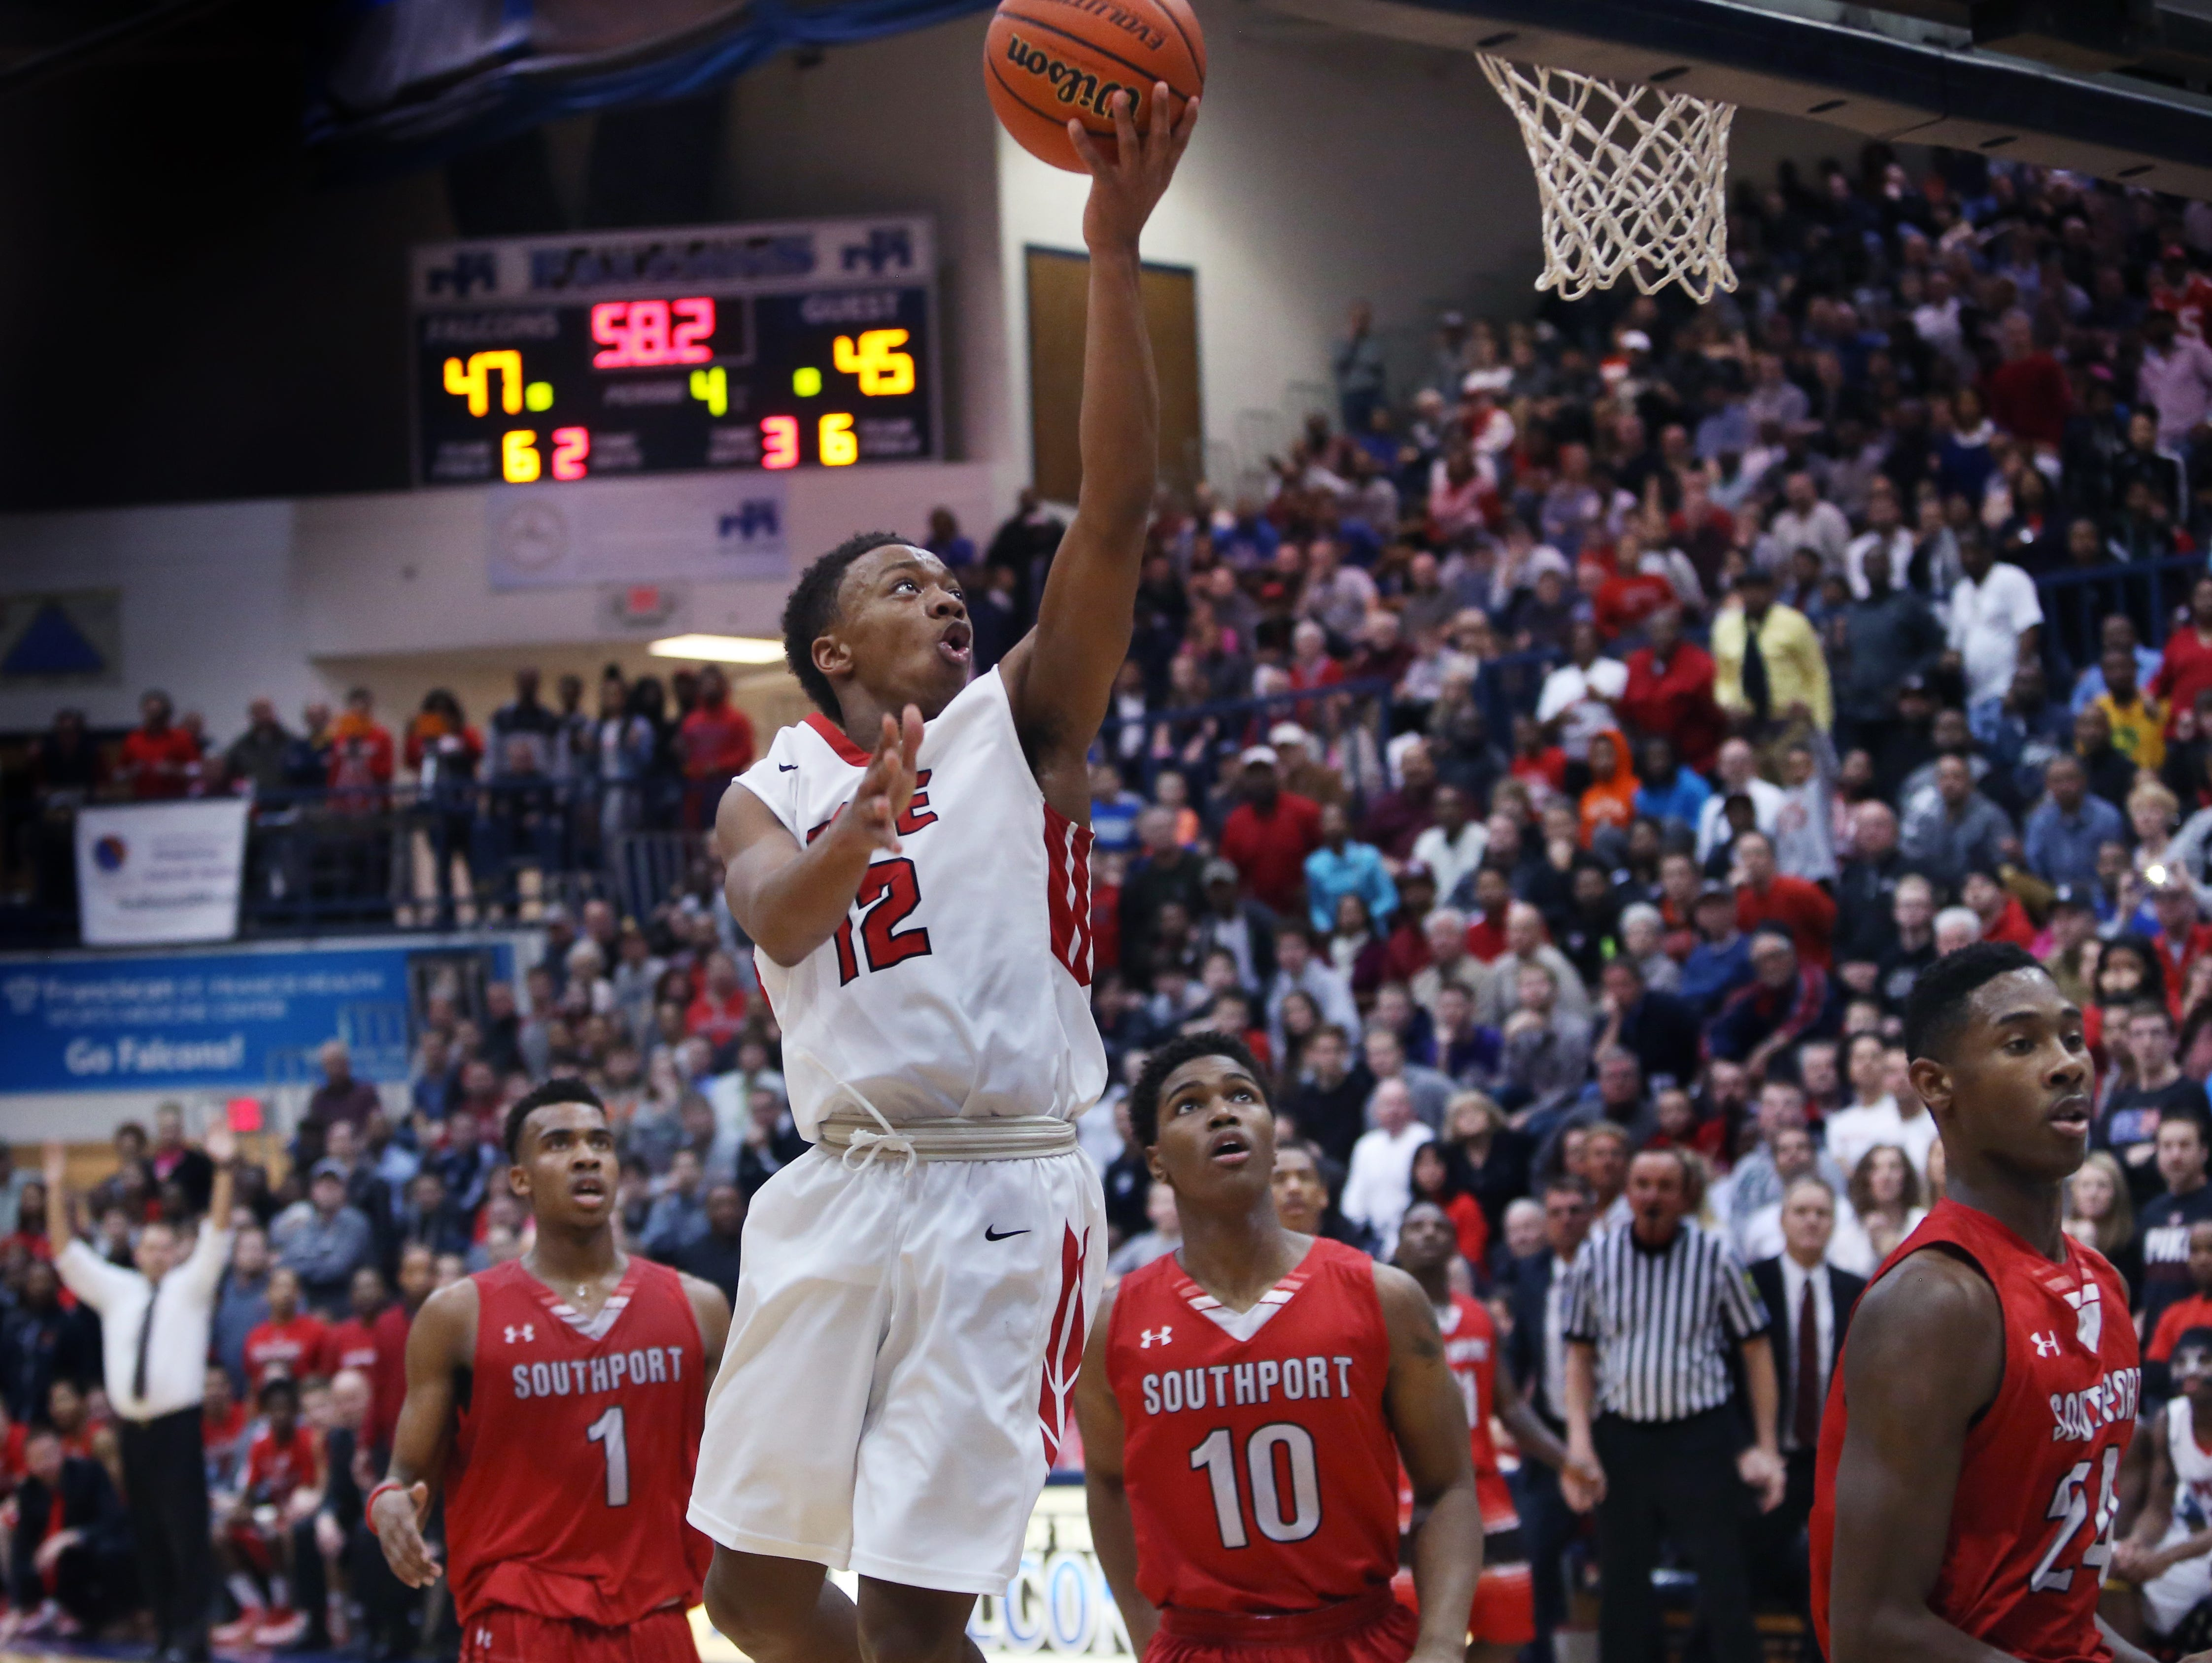 Pike Red Devil Justin Thomas, the team's high scorer with 21 points, makes an uncontested basket with under a minute to play, which turned out to be the winning basket, putting Pike ahead 49-45 in the teams' 49-48 win over the Class 4A No. 1 Southport Cardinals in the Perry Meridian boys basketball sectional final on Saturday, March 7, 2015.